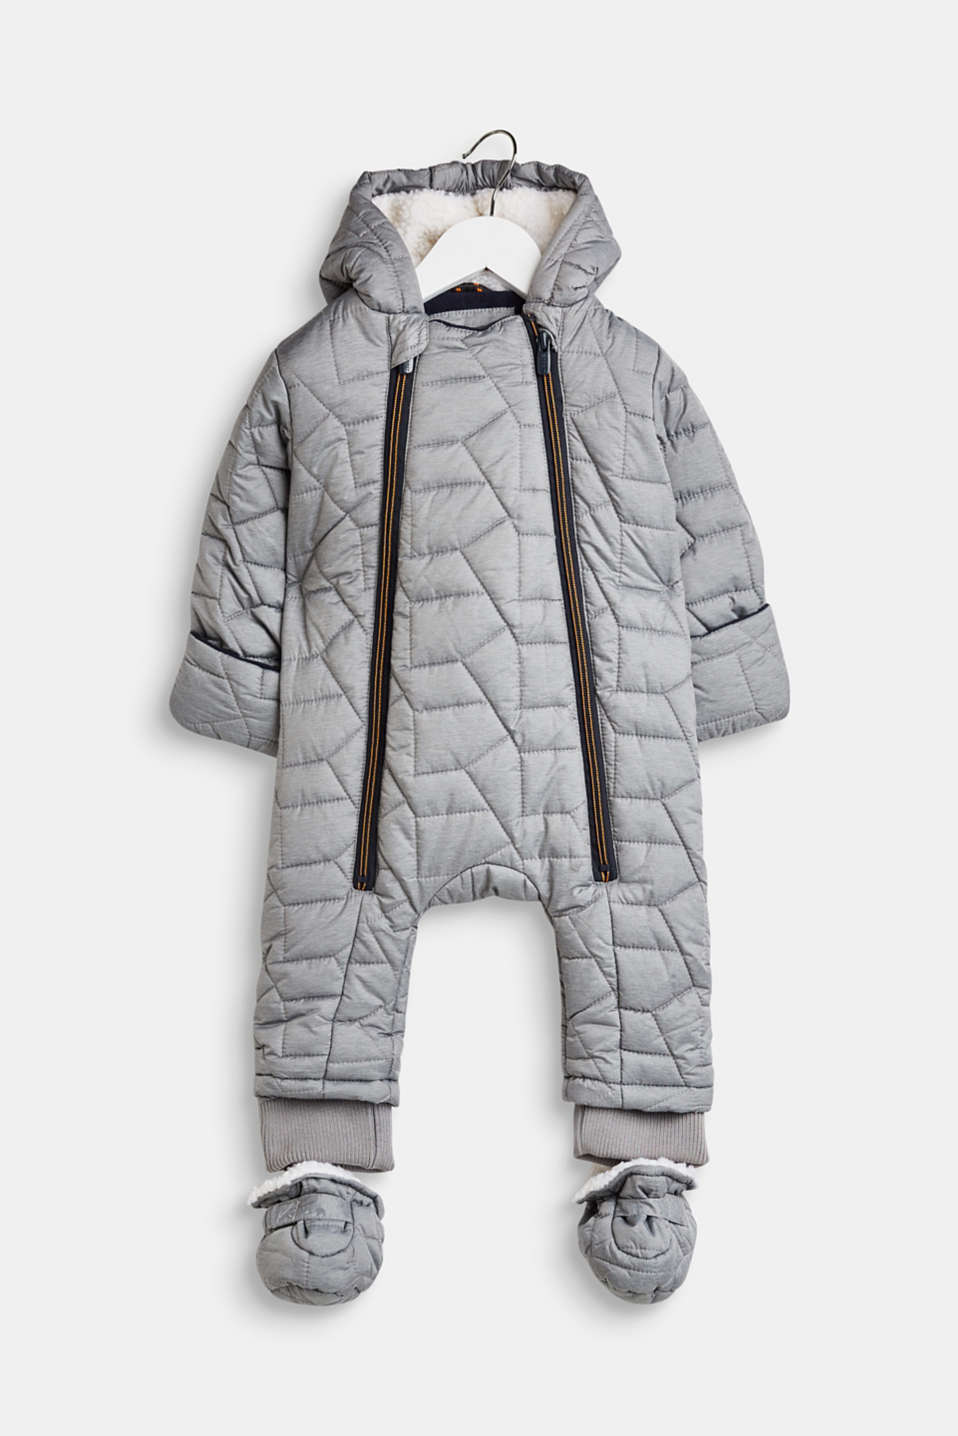 Esprit - Topstitched snowsuit